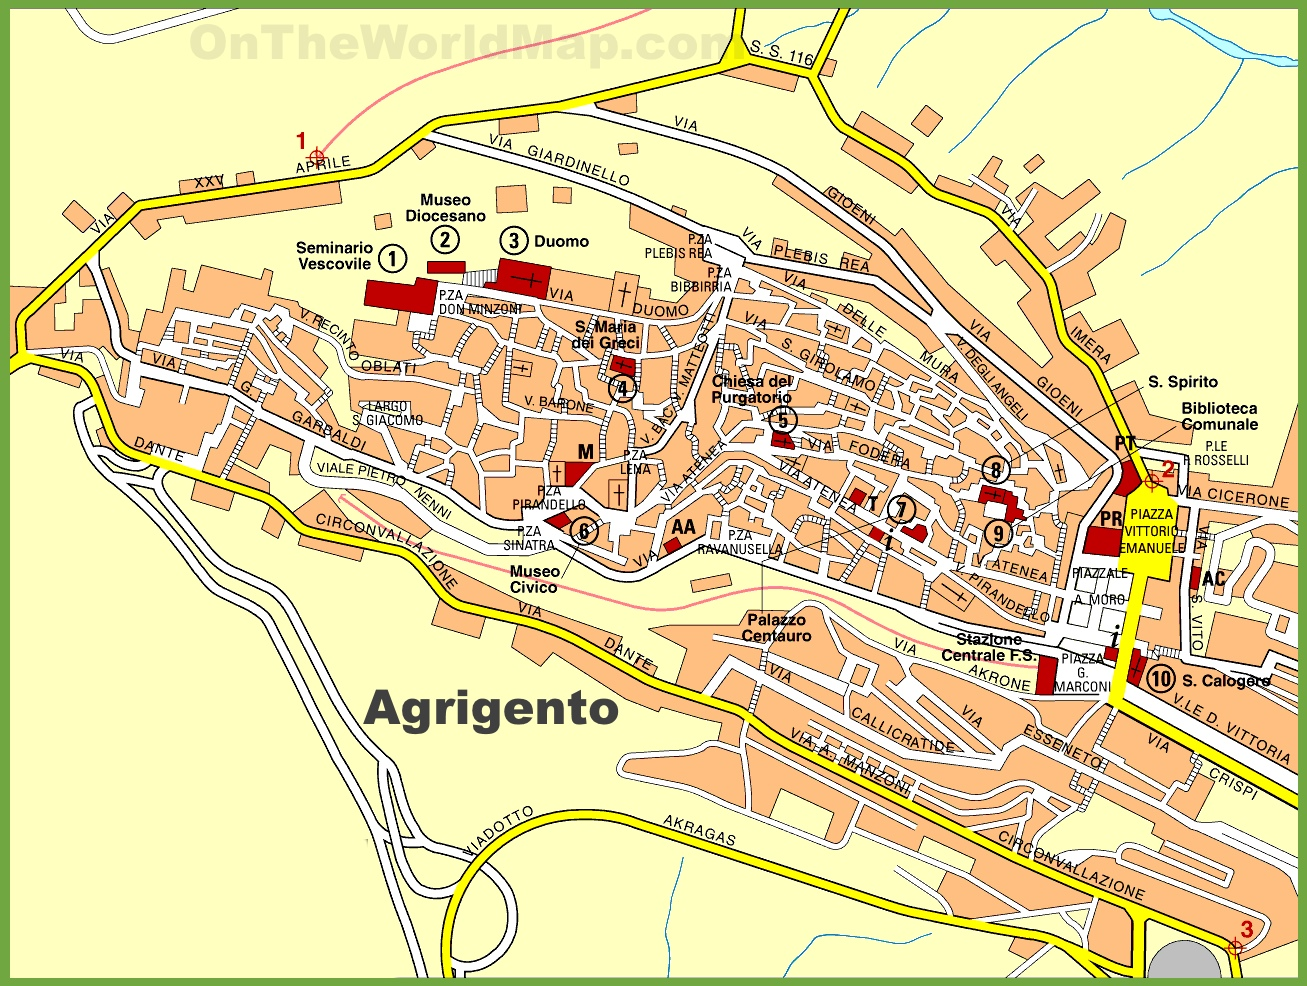 siena tourist map siena tourist attractions map siena tourist  - ccsu map mac map network drive siena tourist